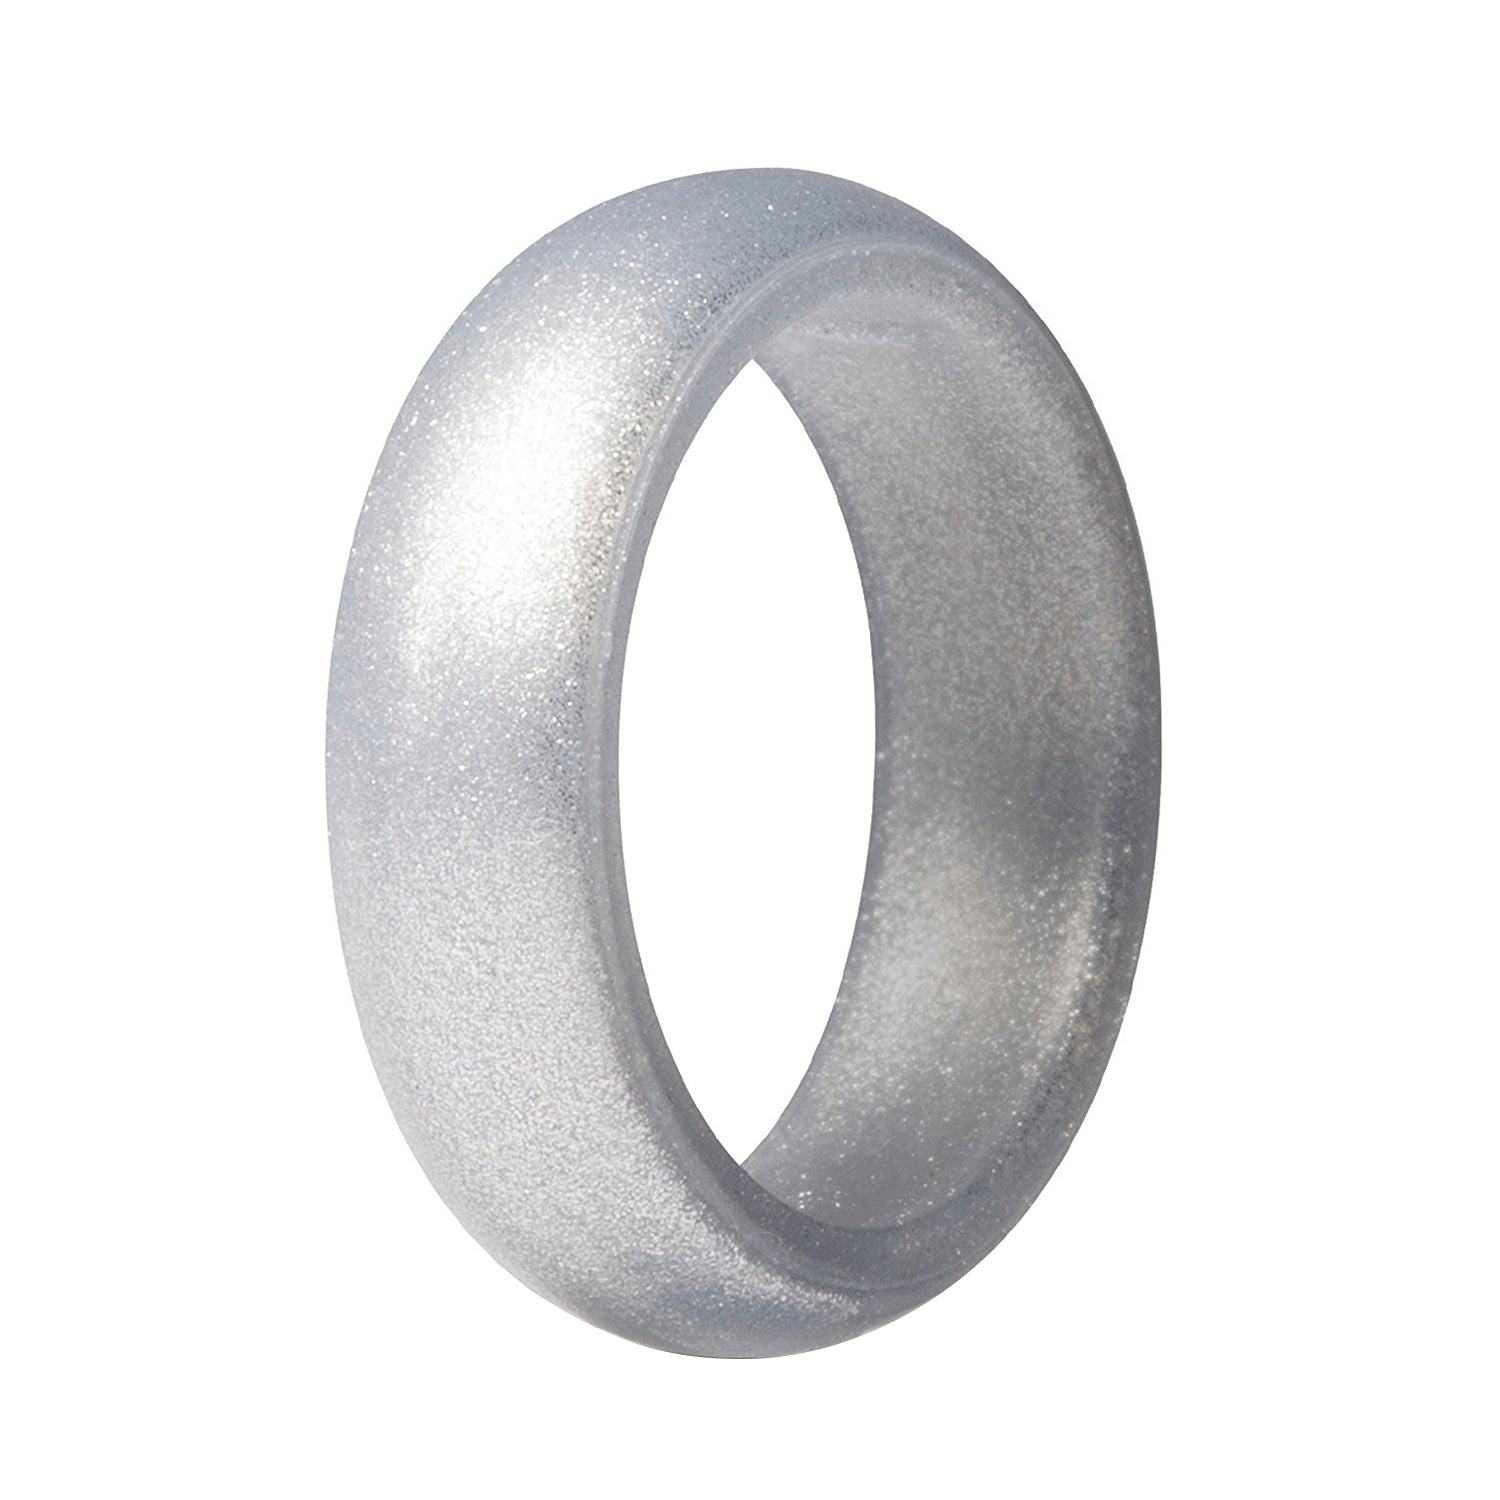 Women's Classic Silicone Ring - Silver